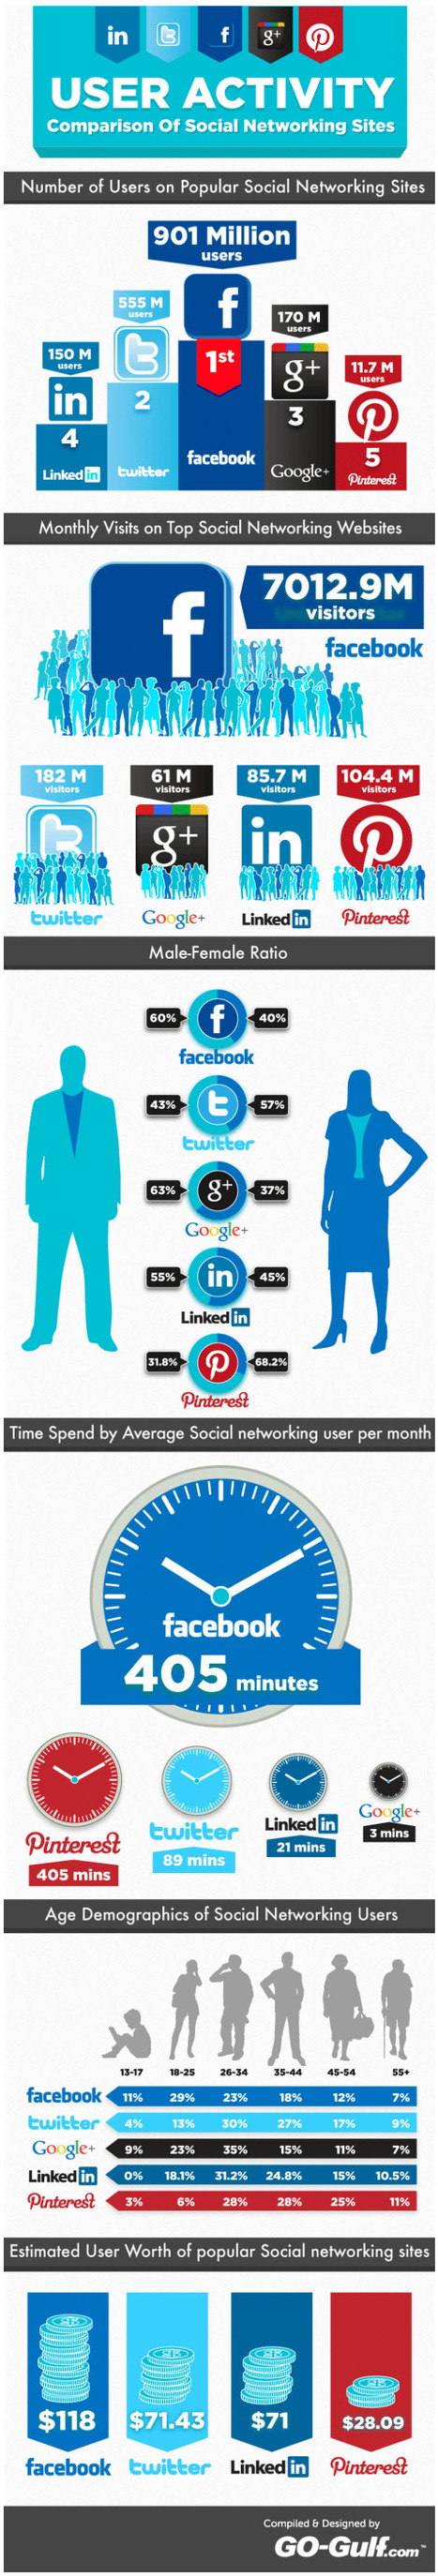 Social Network Tribes Gaining Momentum - The Latest Findings [Infographic] | Mediaclub | Scoop.it